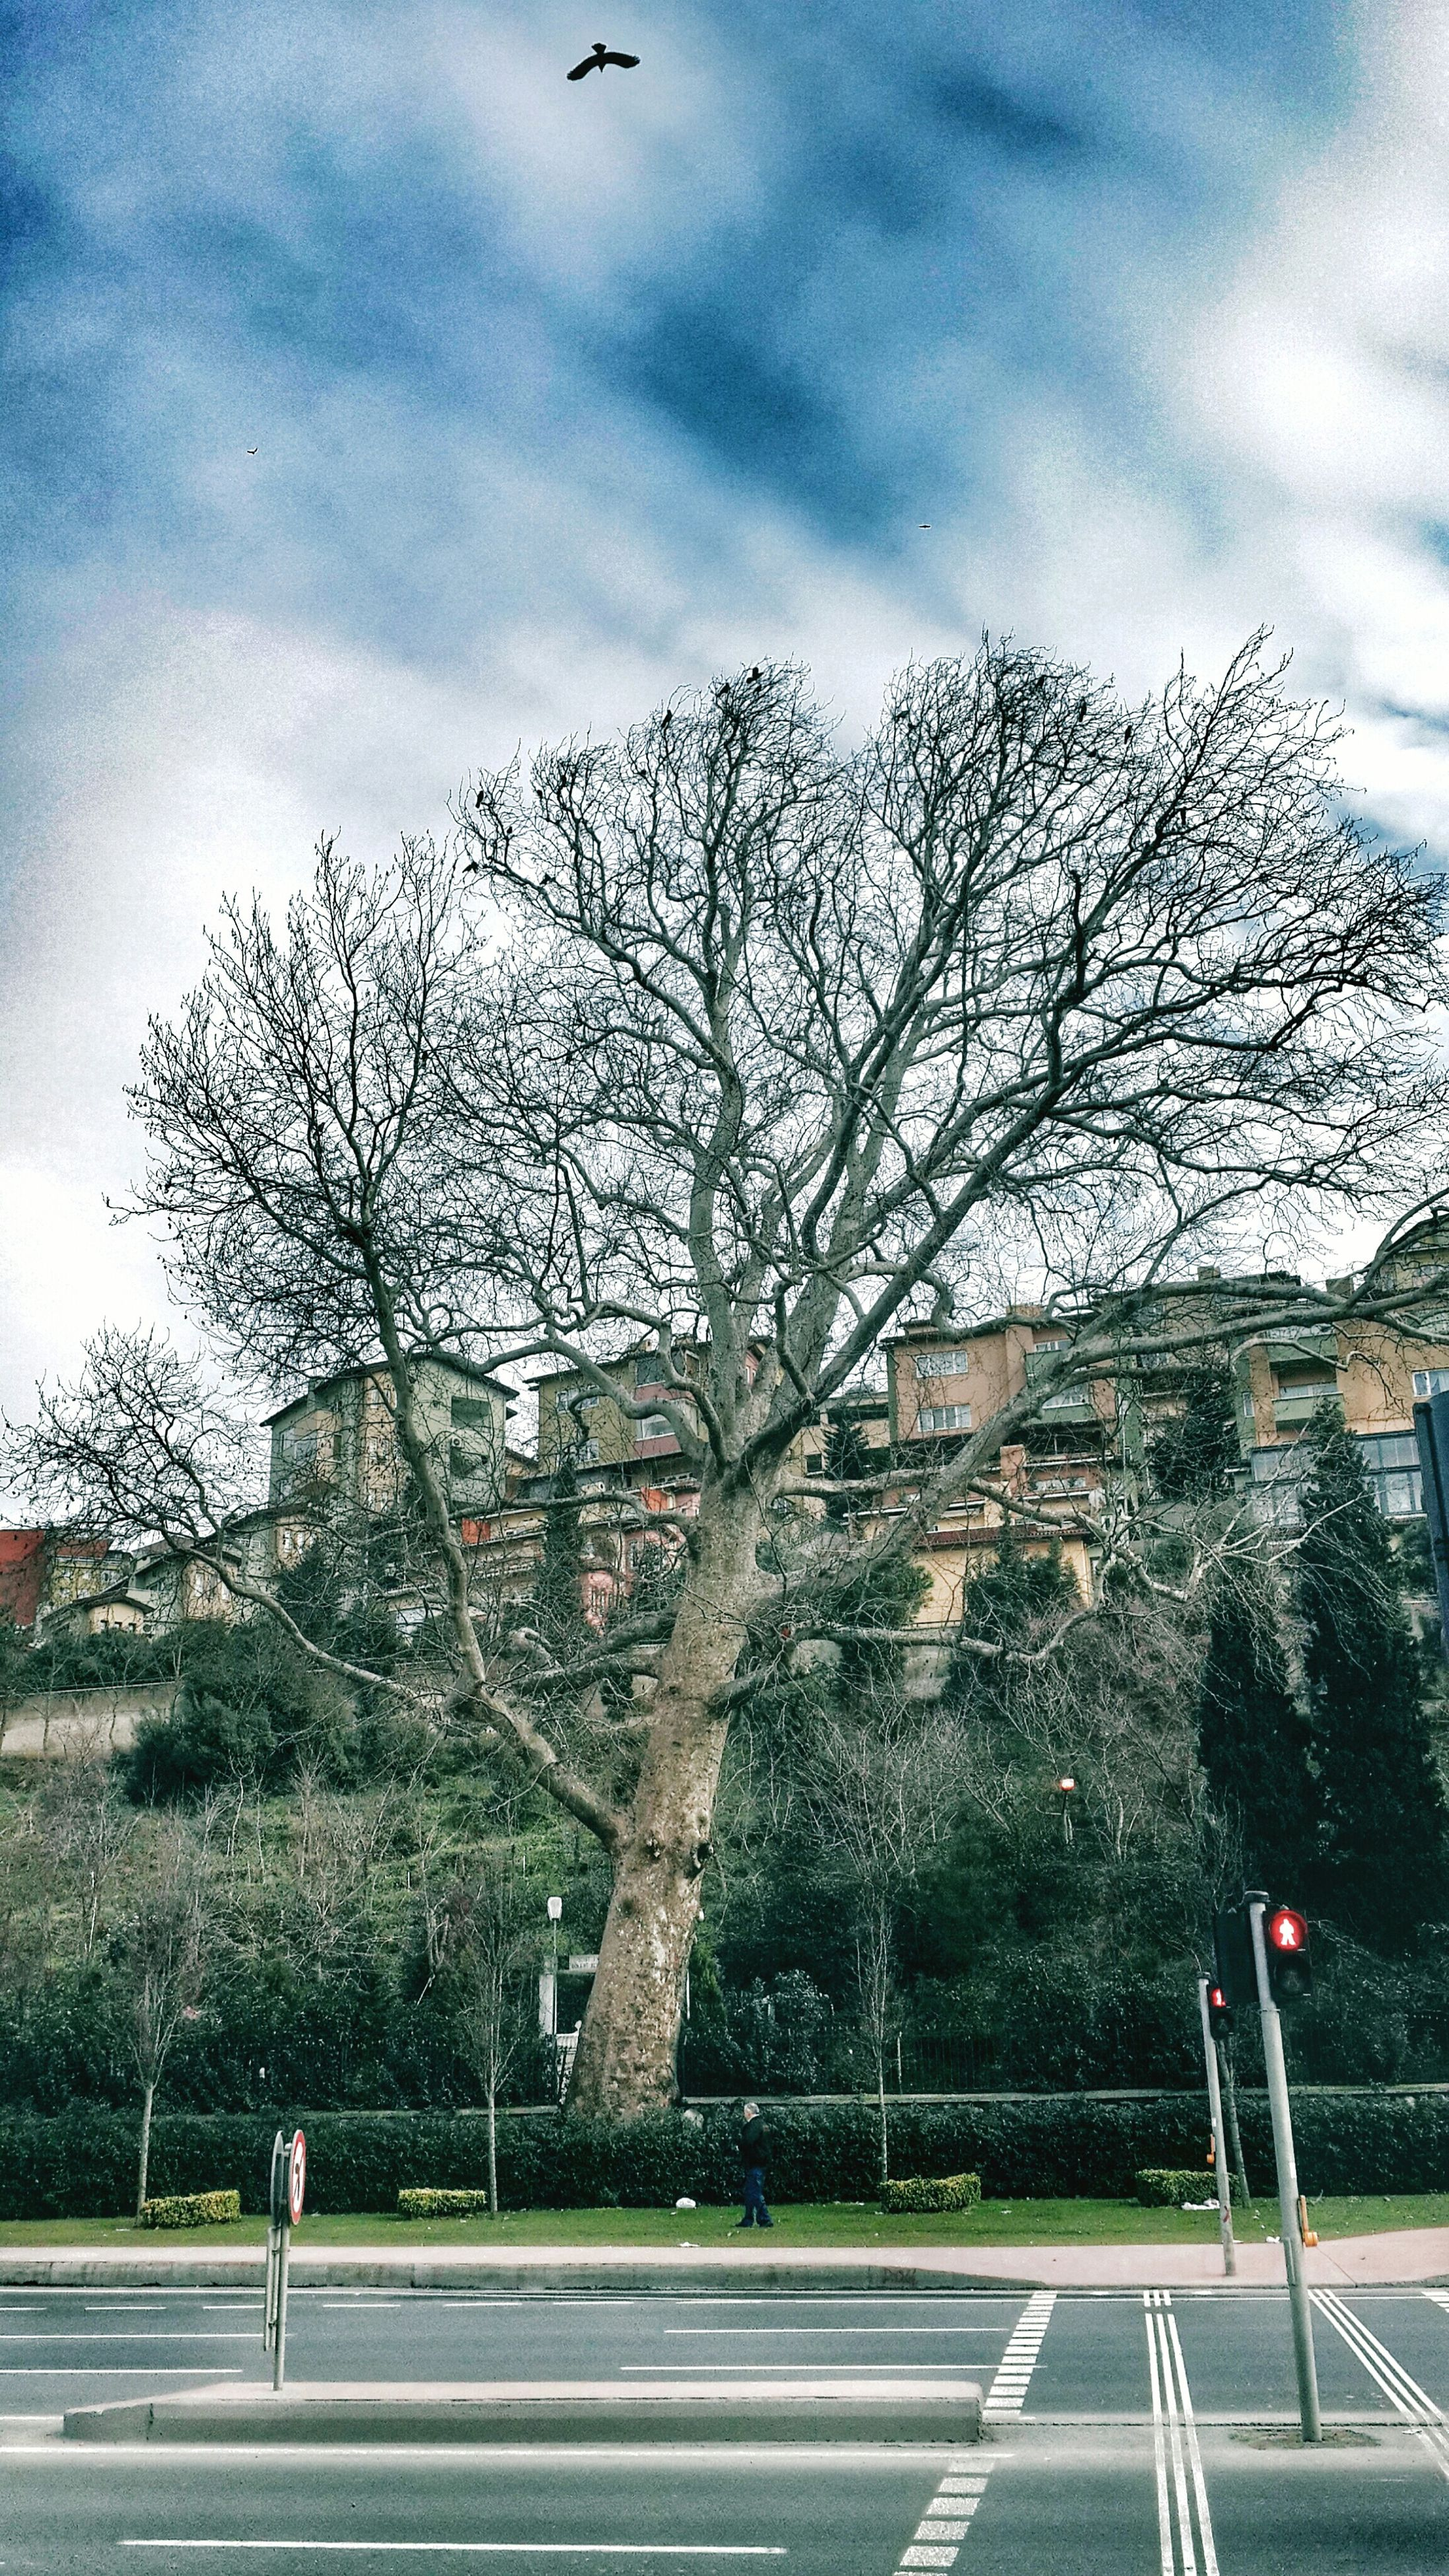 tree, sky, bare tree, building exterior, built structure, architecture, cloud - sky, cloudy, cloud, branch, road, day, weather, nature, outdoors, transportation, street light, street, house, incidental people